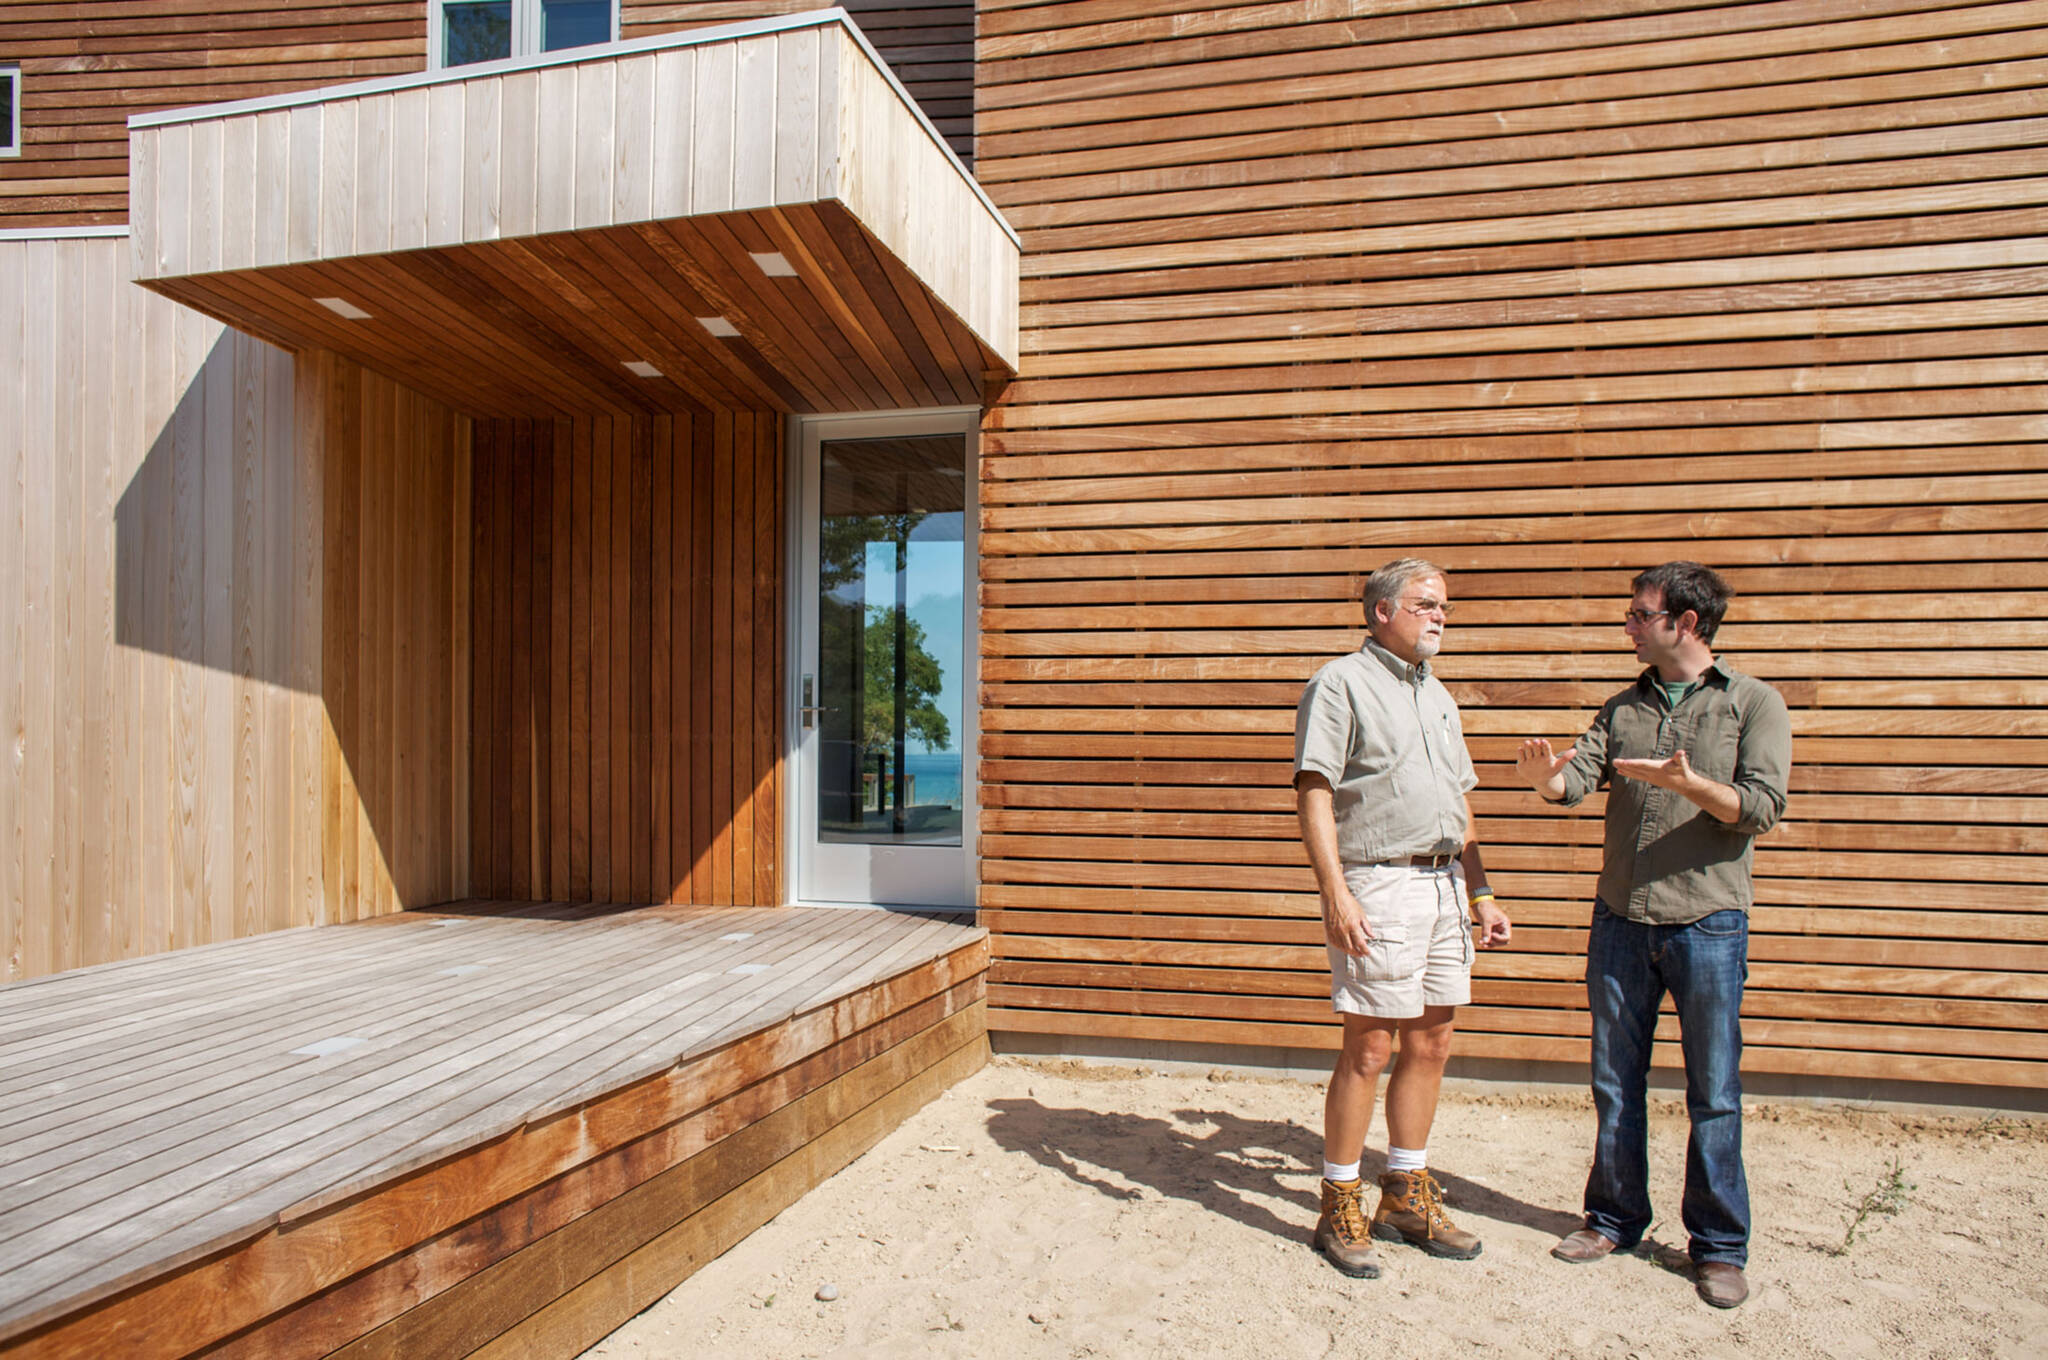 Human scale on the front door of the sustainable lake house project in Omena, Michigan designed by the architecture studio Danny Forster & Architecture